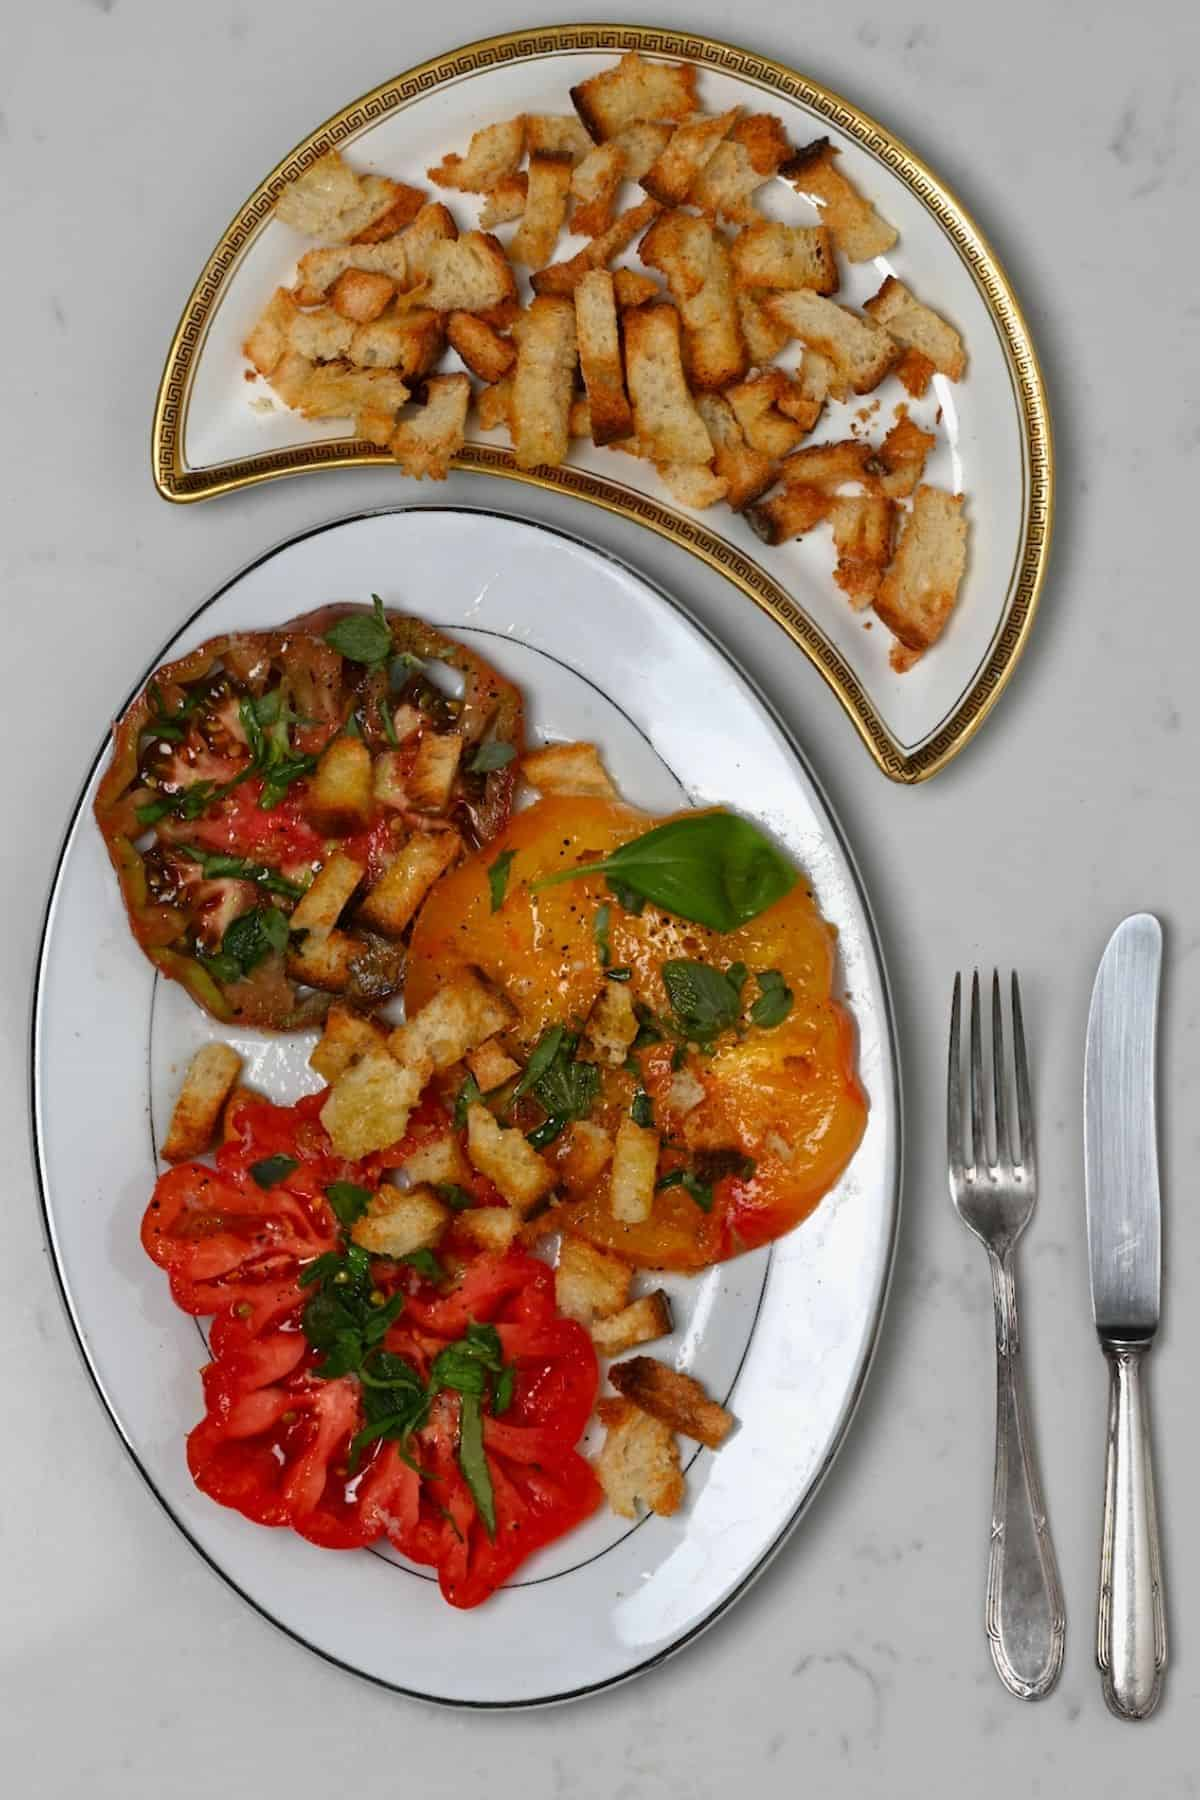 Simple tomato salad and croutons